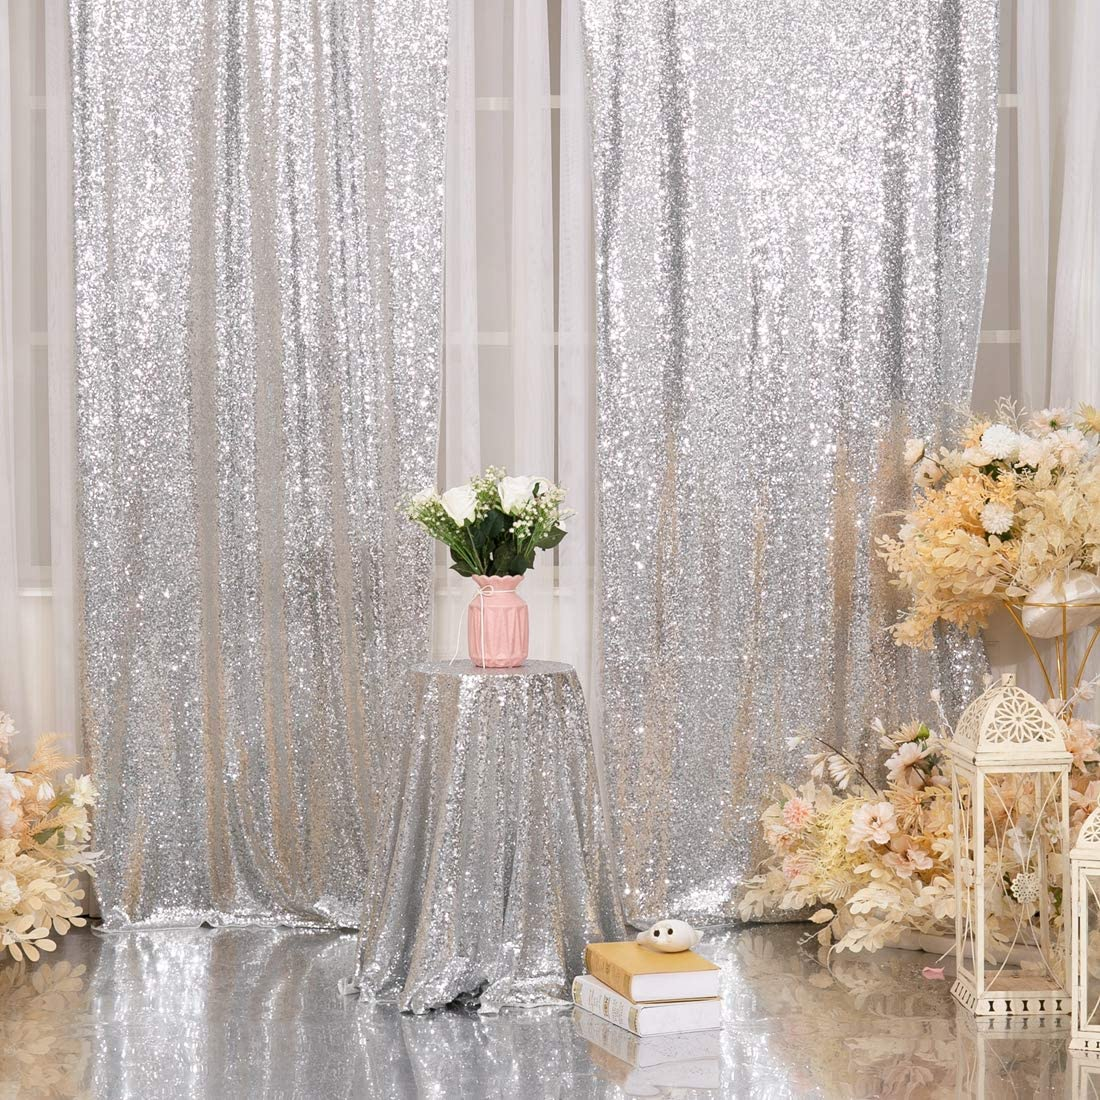 Juya Delight 4ft x 6ft Light Gold Sequin Backdrop Curtain for Party Wedding Photography